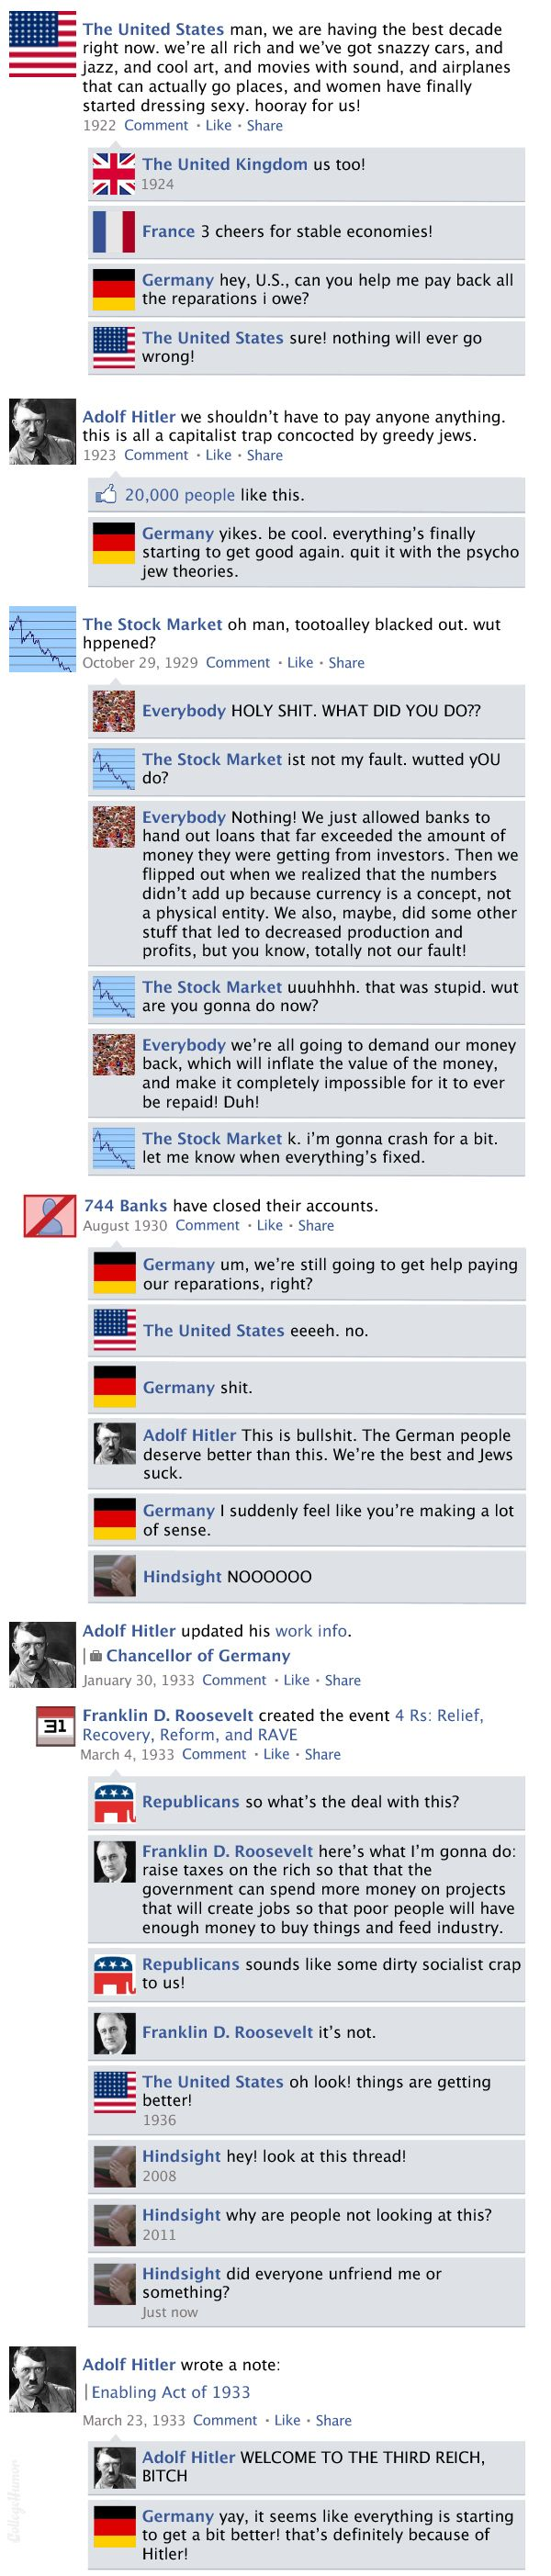 Facebook News Feed History of the World > Great Depression